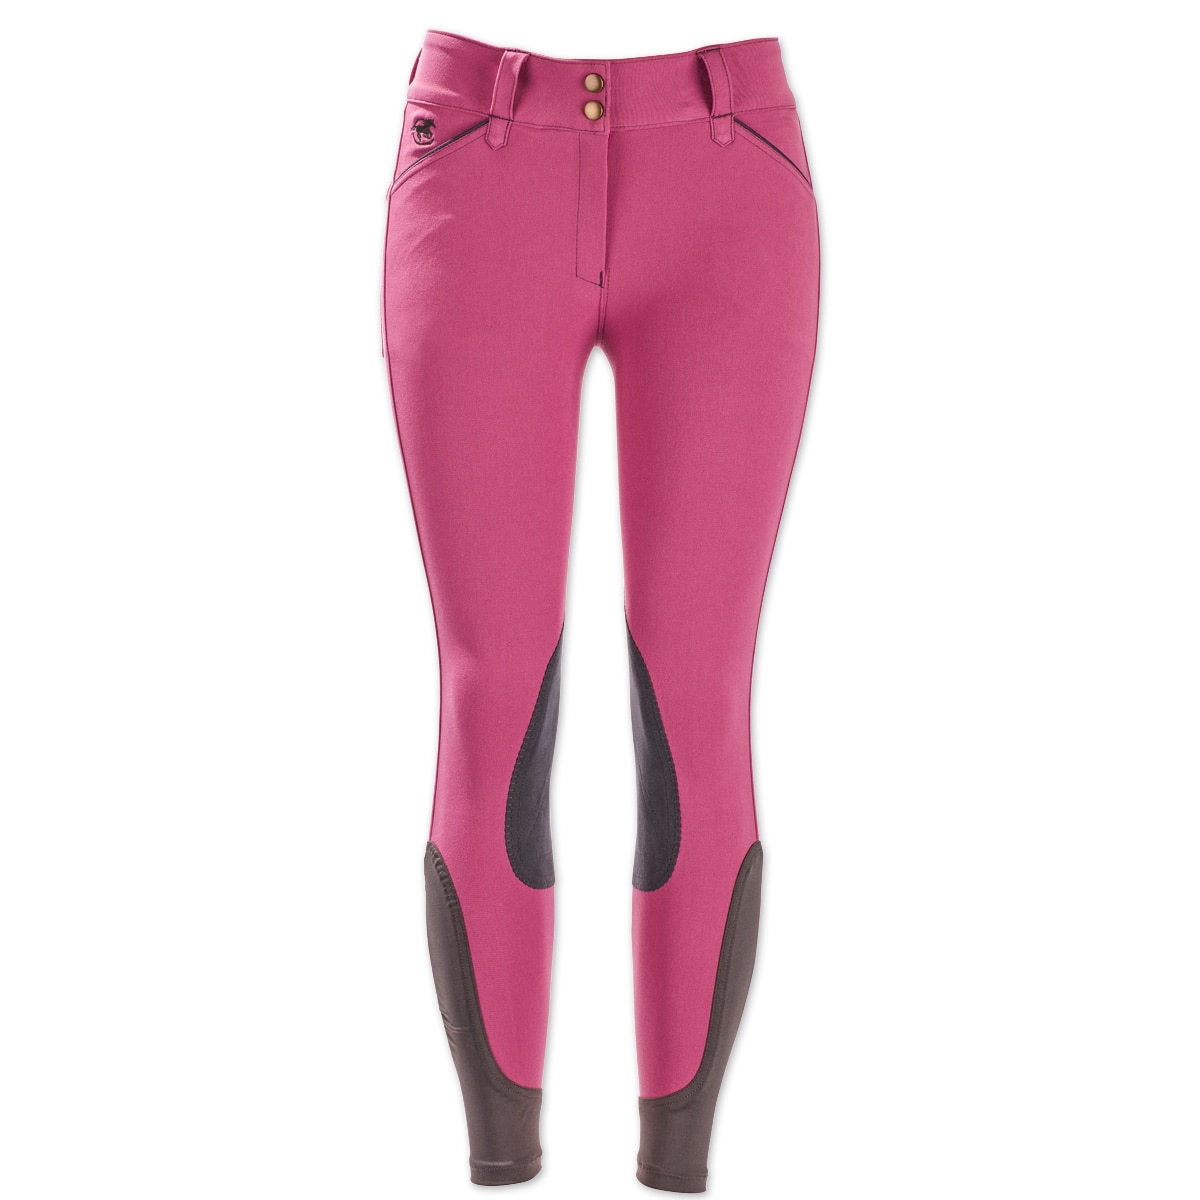 051c7826a97 Piper Breeches by SmartPak - Original Knee Patch- Clearance!